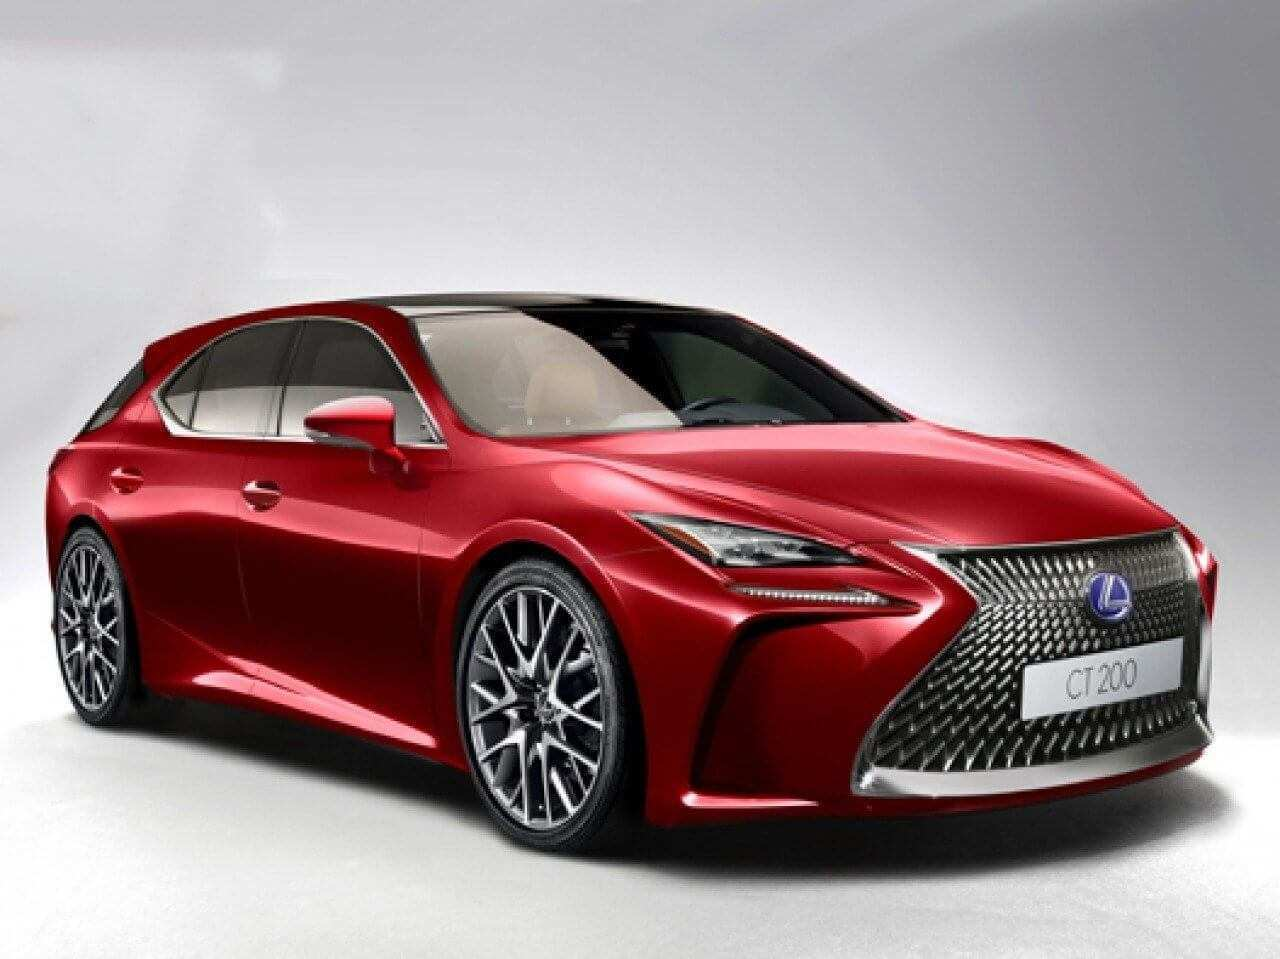 72 Concept of 2020 Lexus CT 200h Pricing with 2020 Lexus CT 200h